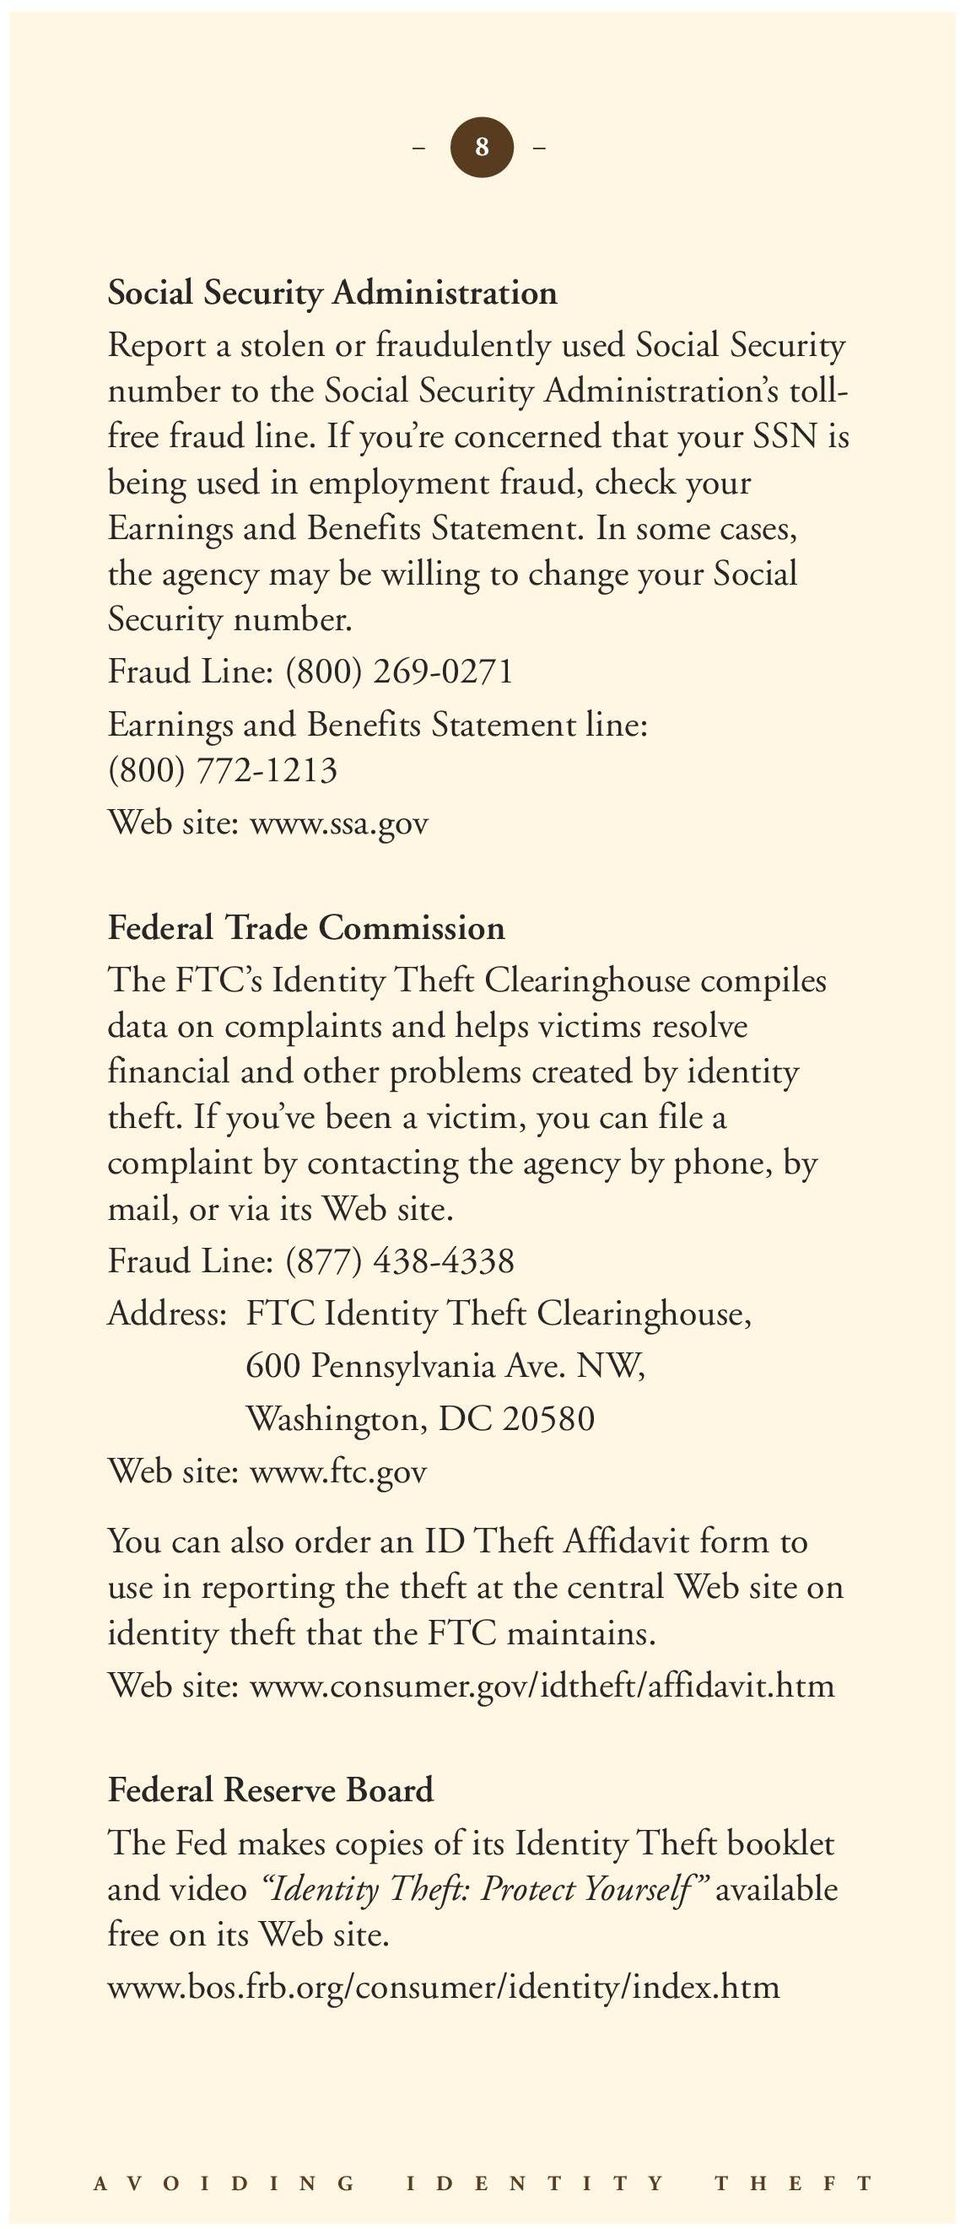 Fraud Line: (800) 269-0271 Earnings and Benefits Statement line: (800) 772-1213 Web site: www.ssa.